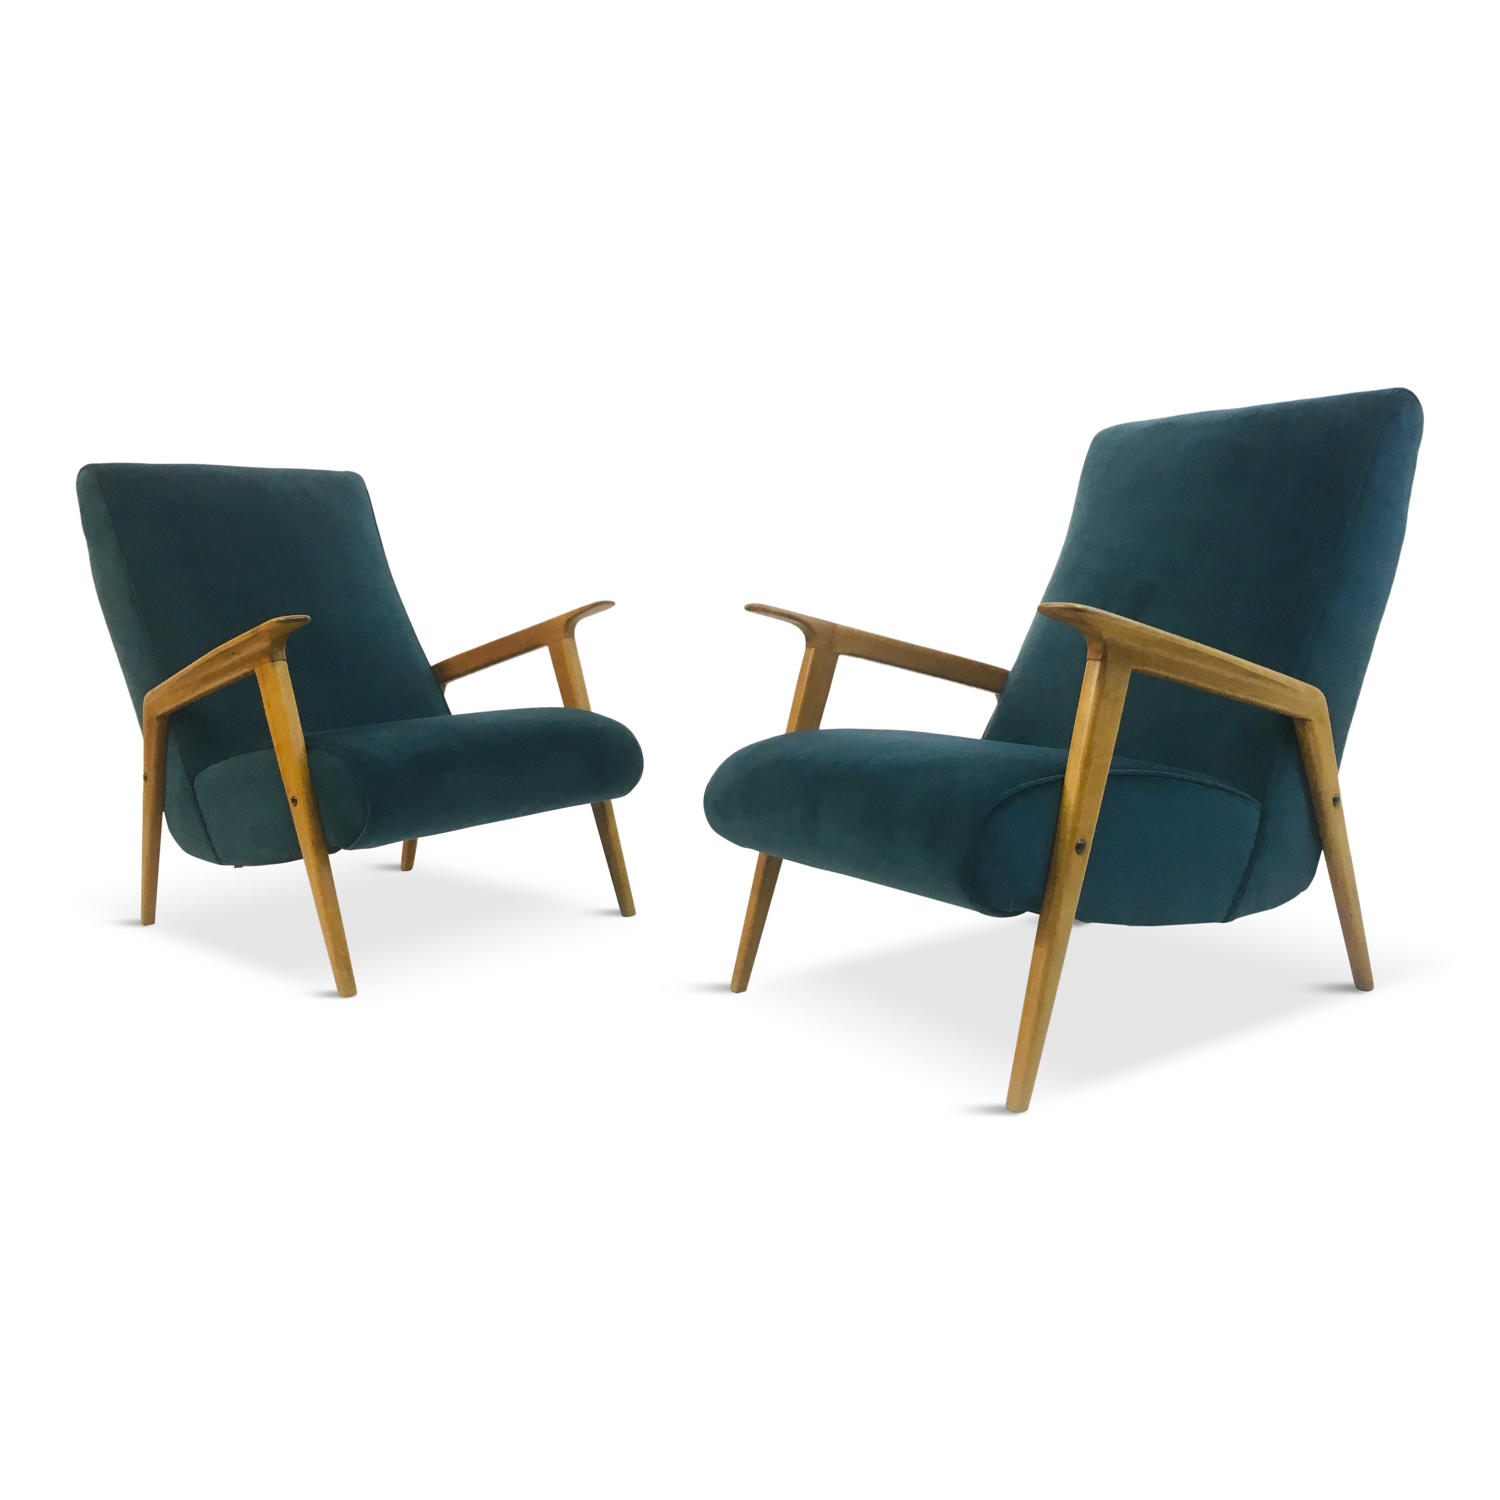 A Pair of 1950s Italian Armchairs in Teal Velvet